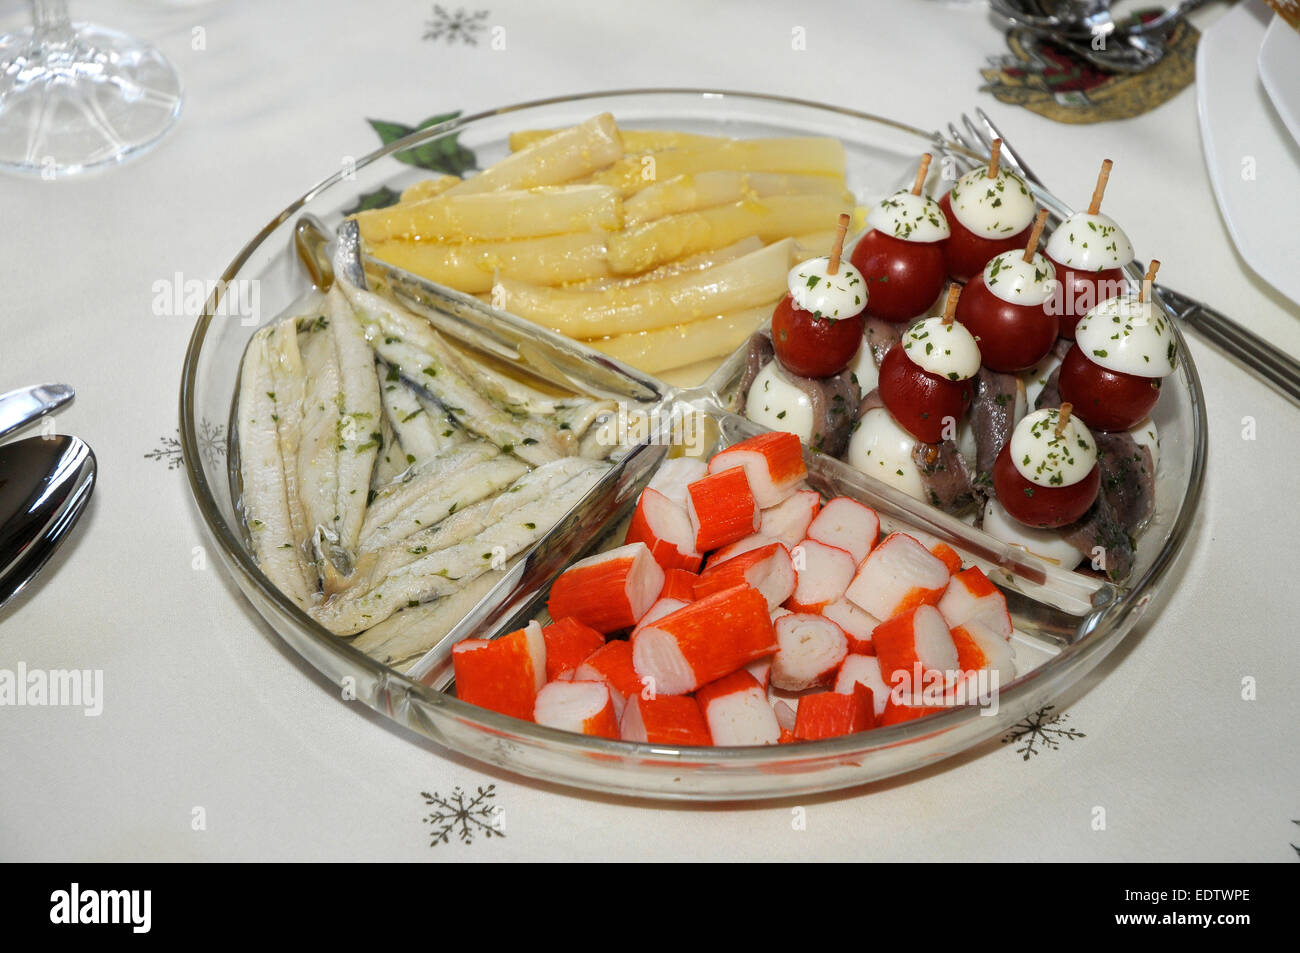 asparagus, anchovies, tomato, cheese and egg, crab served together as a snack bar - Stock Image